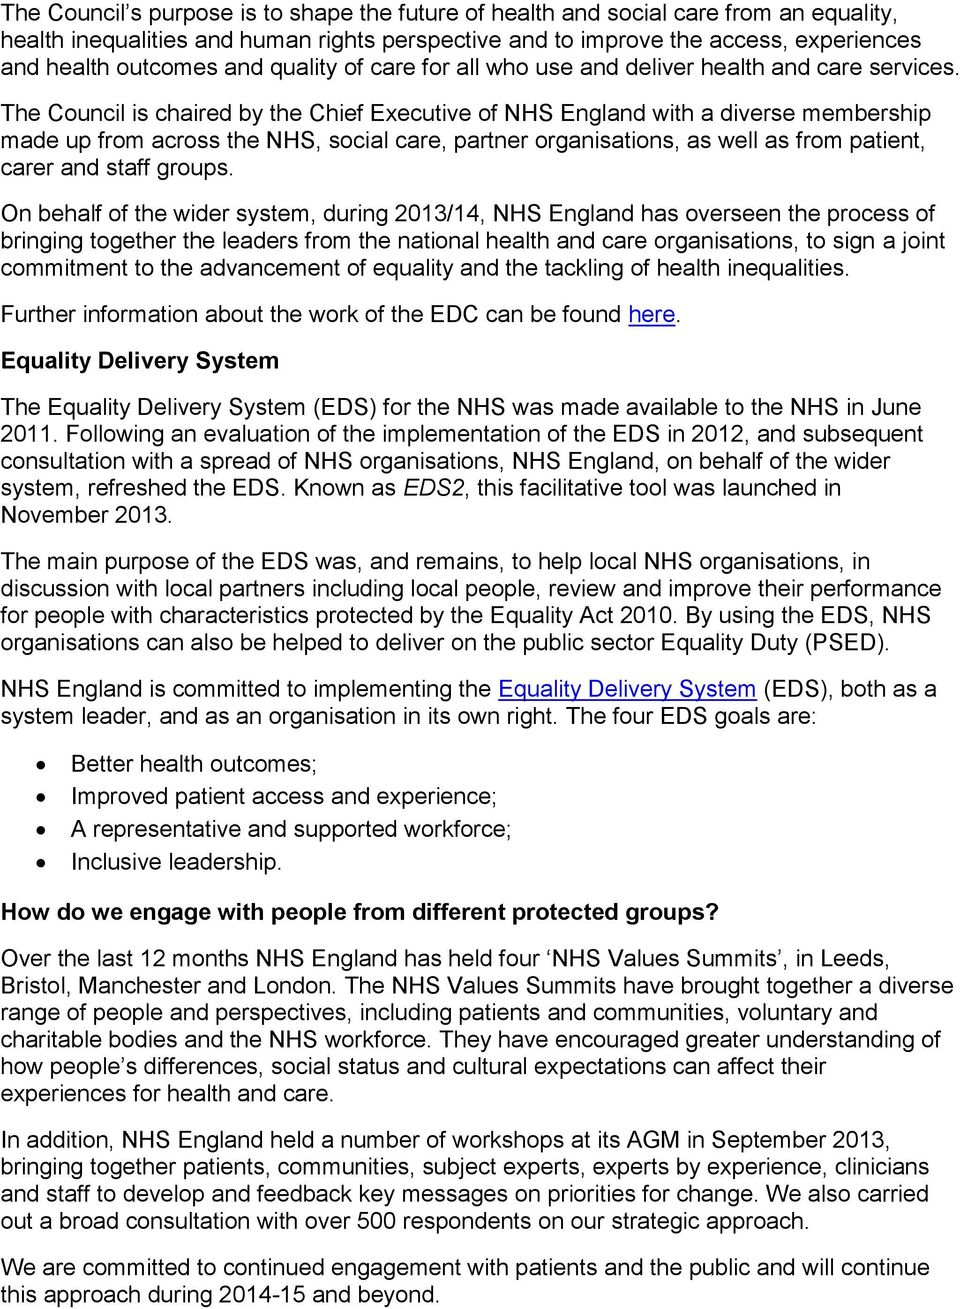 The Council is chaired by the Chief Executive of NHS England with a diverse membership made up from across the NHS, social care, partner organisations, as well as from patient, carer and staff groups.